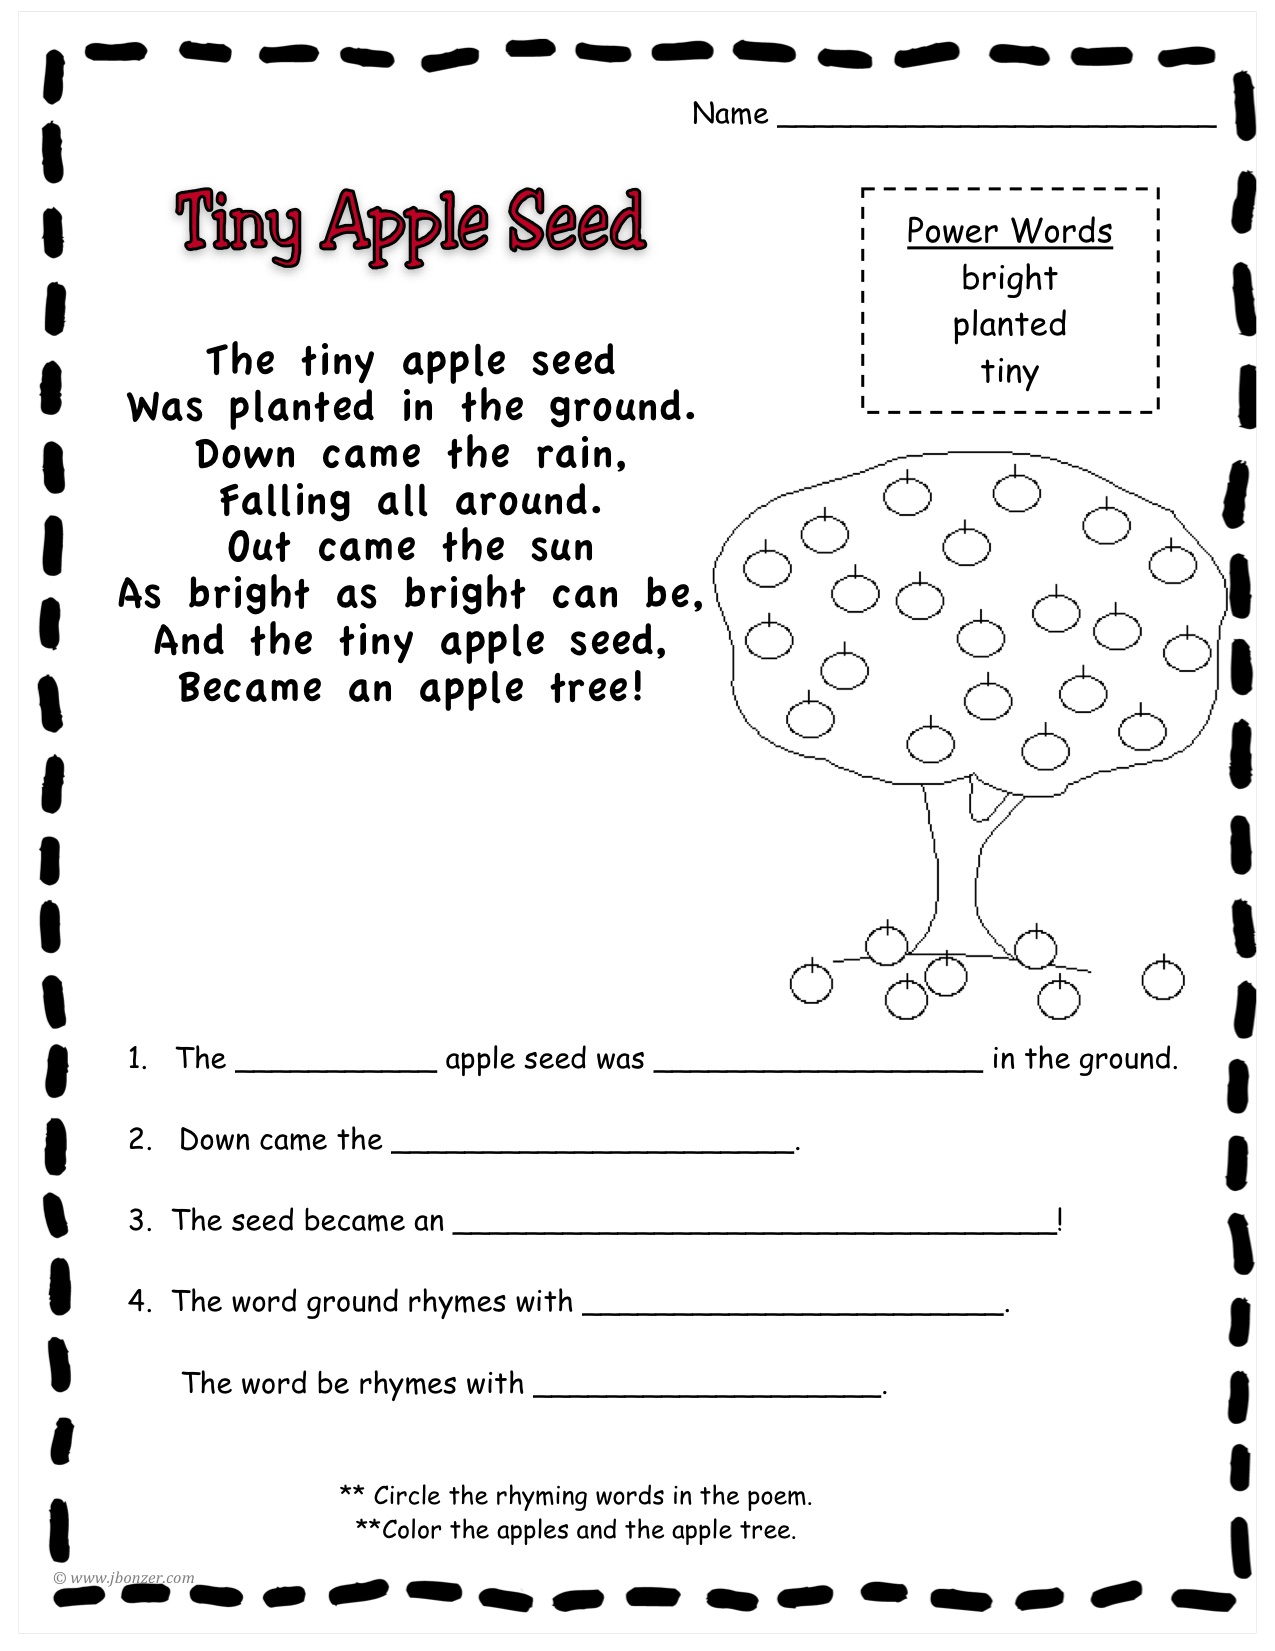 Worksheets Johnny Appleseed Worksheets mrs bonzers miscellaneous printables apple seed